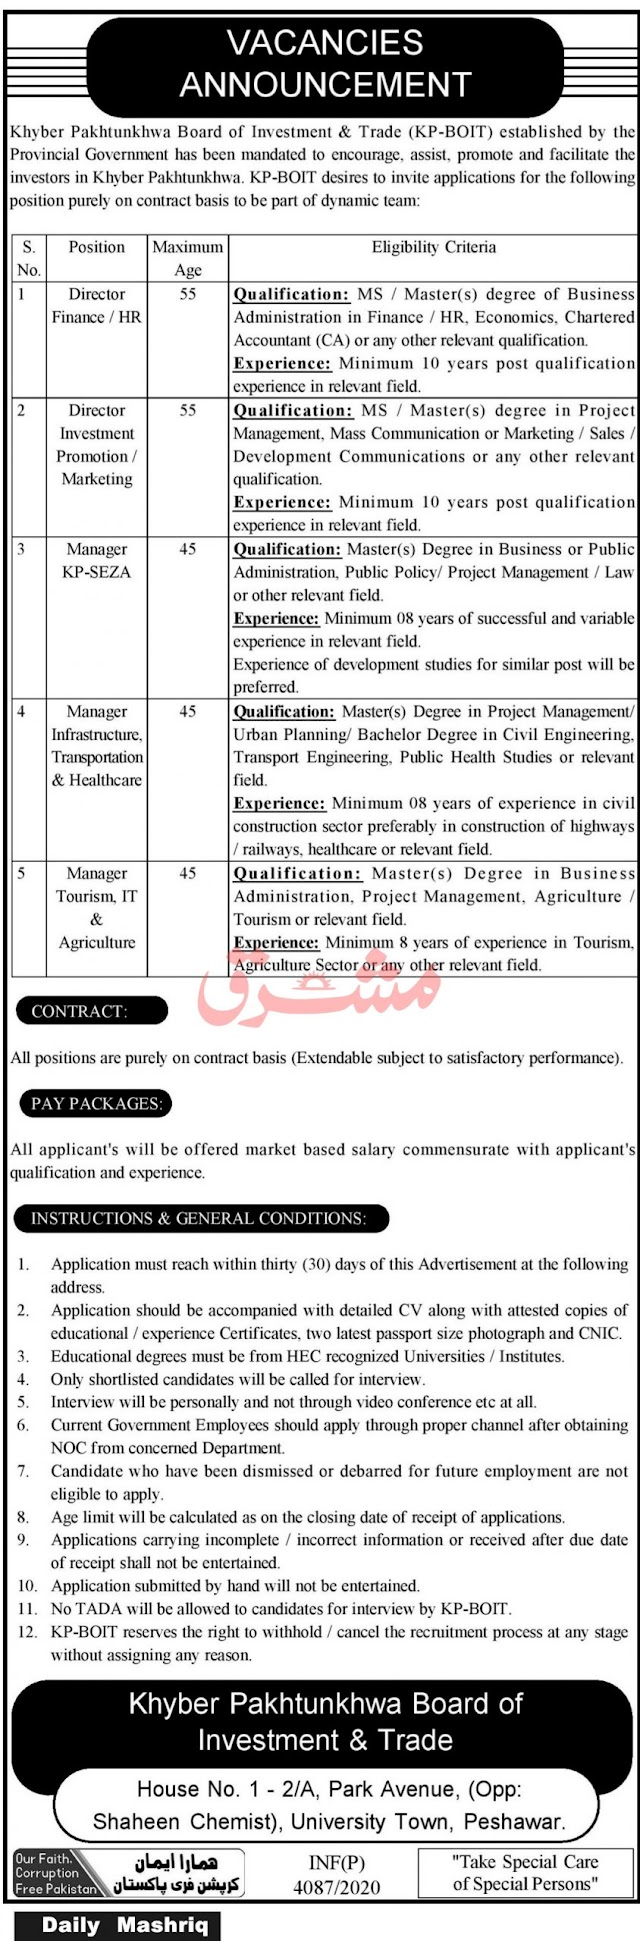 Latest Khyber Pakhtunkhwa Board of Investment & Trade KP-BOIT Jobs 2020 for Manager Posts